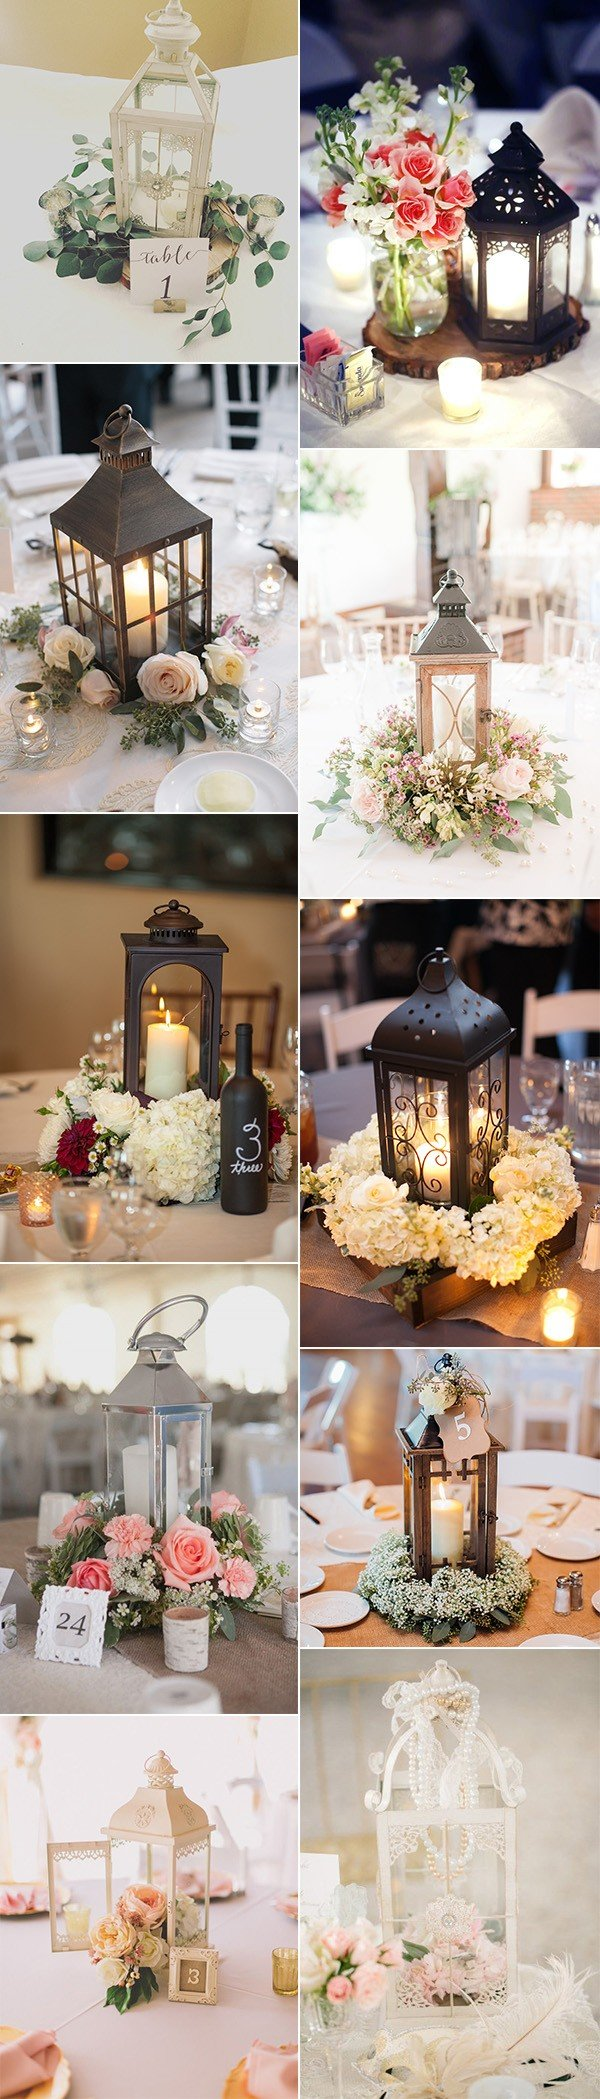 50 Fabulous Vintage Wedding Centerpiece Decoration Ideas